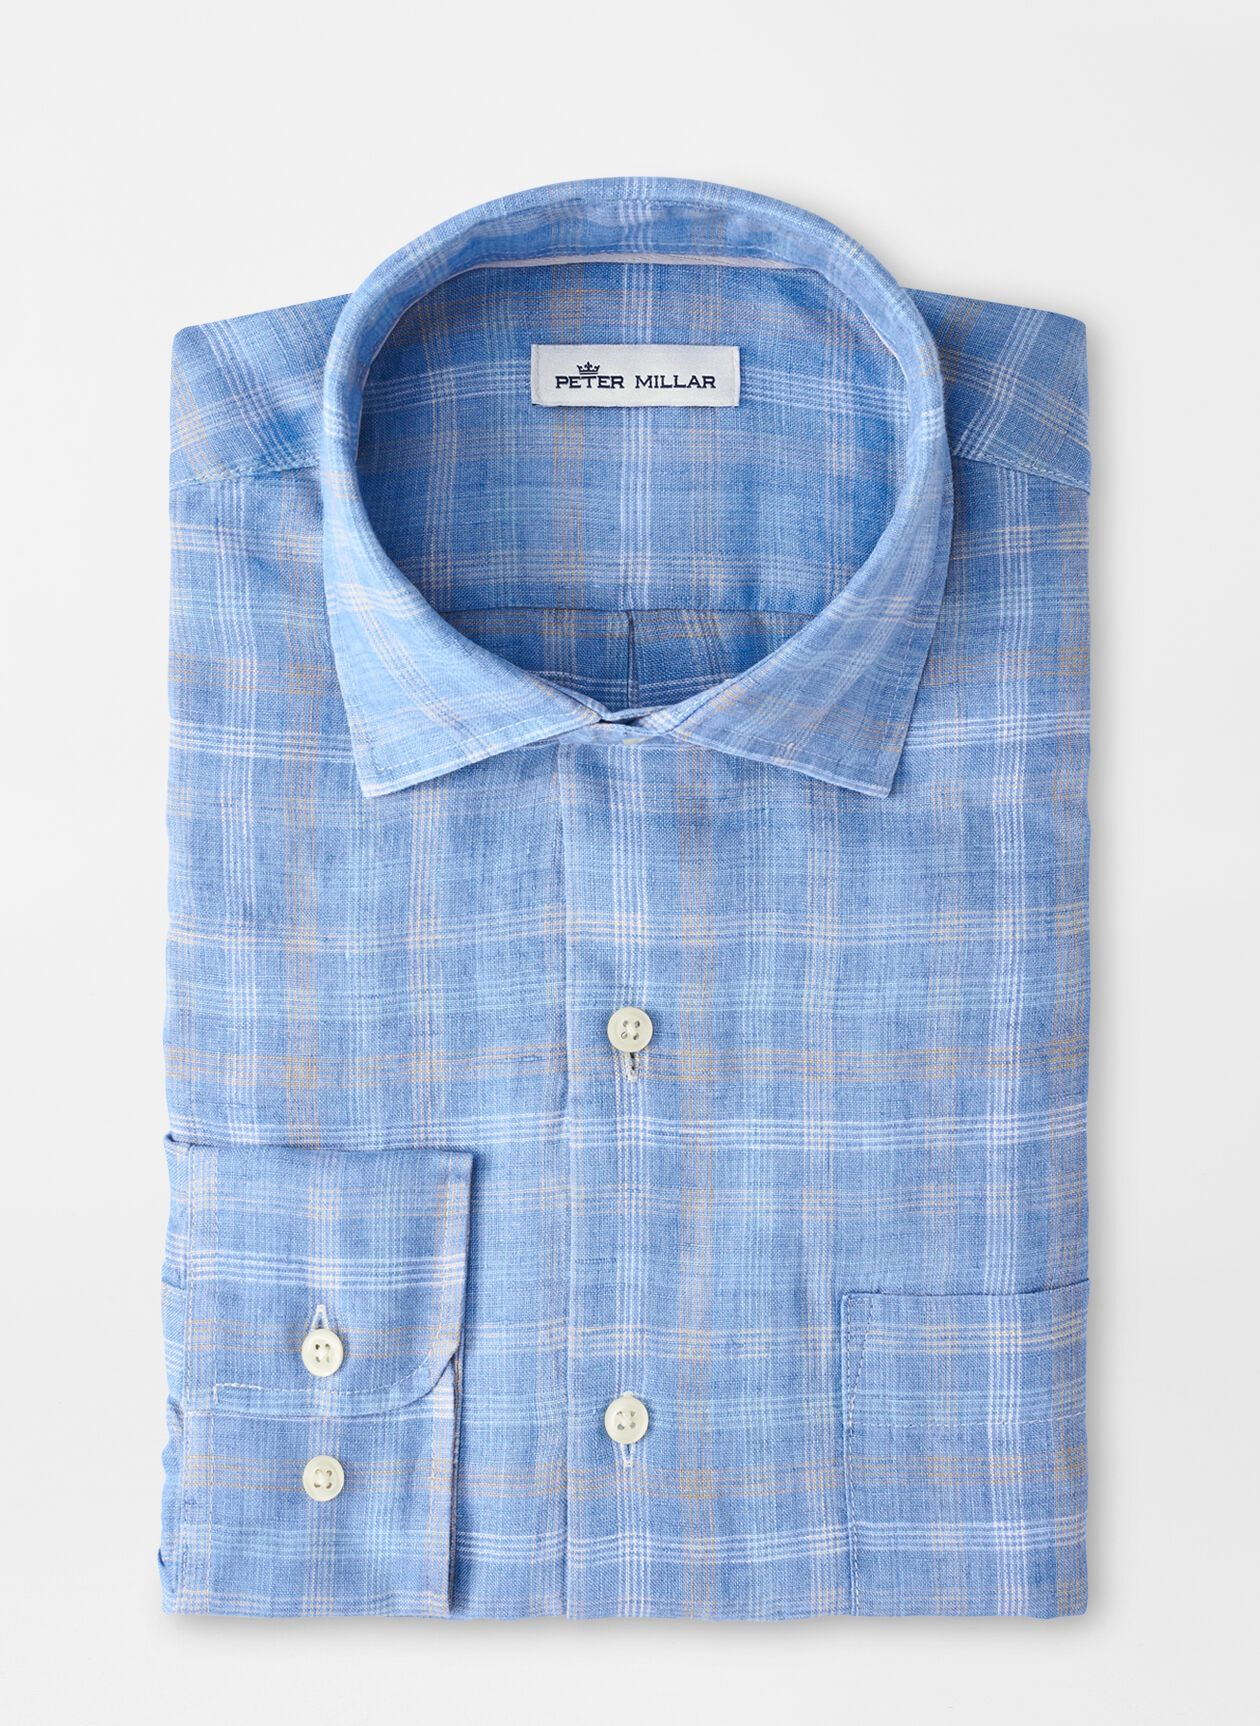 PETER MILLAR Men's Sport Shirt Peter Millar Duxbury Beach Linen Sport Shirt || David's Clothing